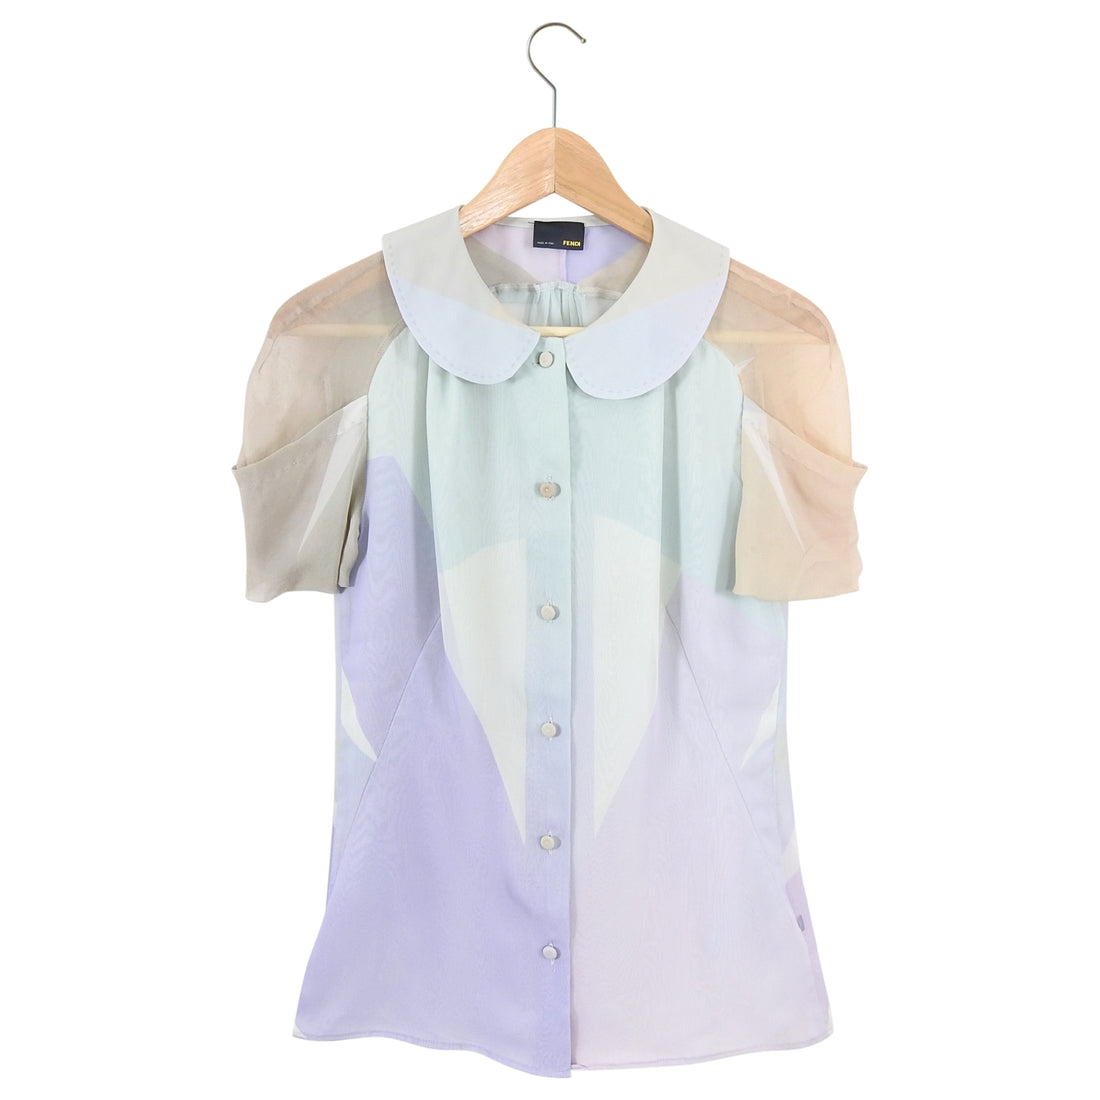 Fendi Sheer Silk Chiffon Pastel Color Block Blouse - IT42 / 6 Small